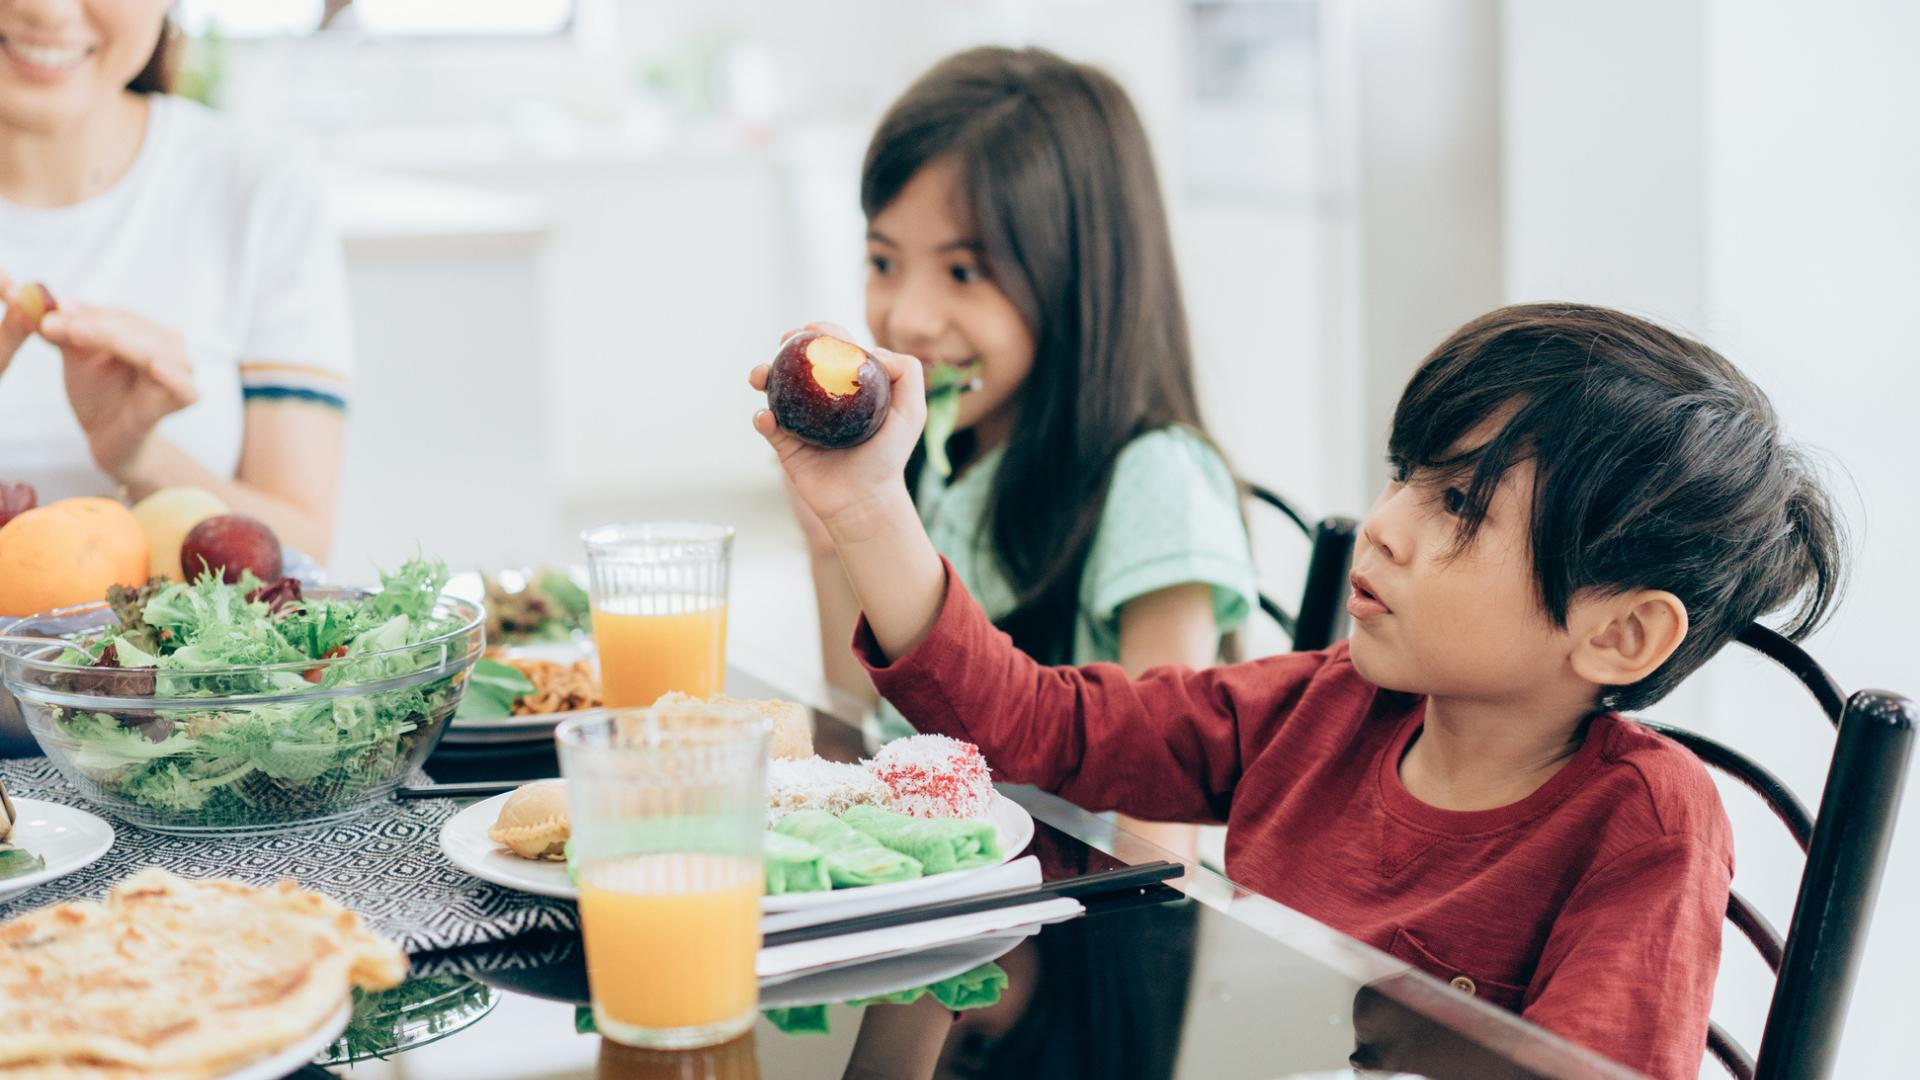 Eating at dinner table healthy habit for kids